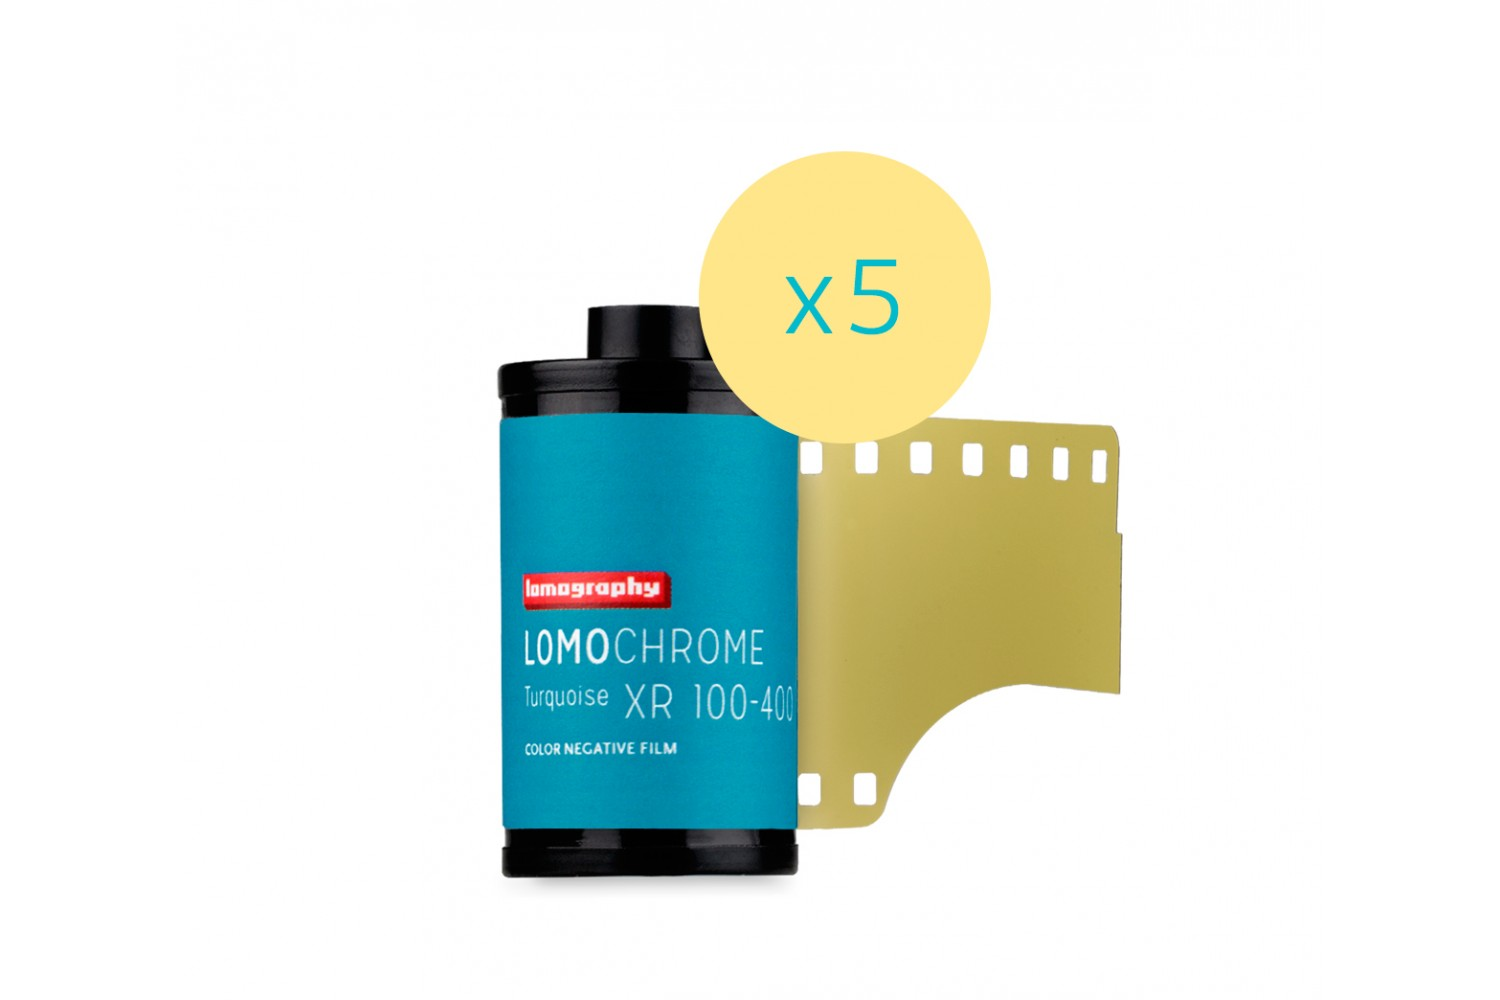 Lomography LomoChrome Turquoise XR 100-400 35mm Pack of 5